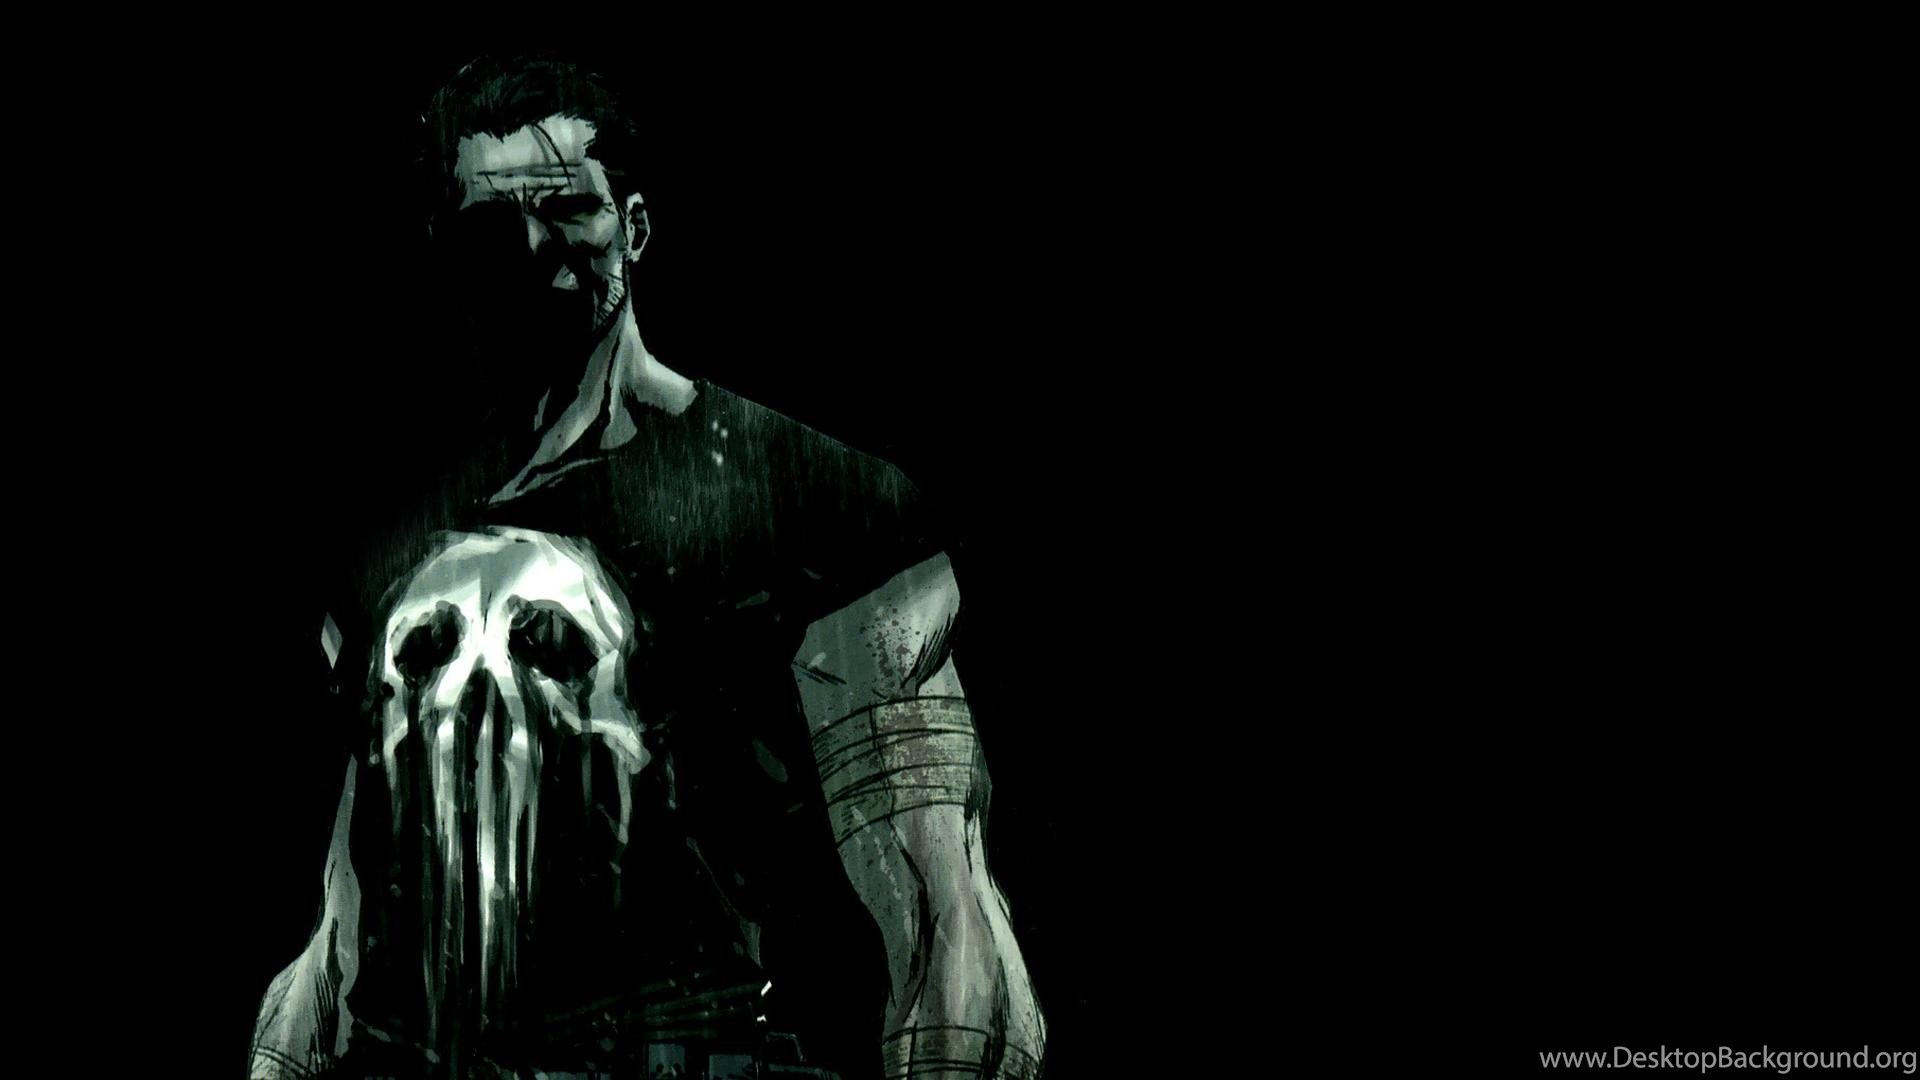 The Punisher Wallpapers Hd Backgrounds Desktop Background